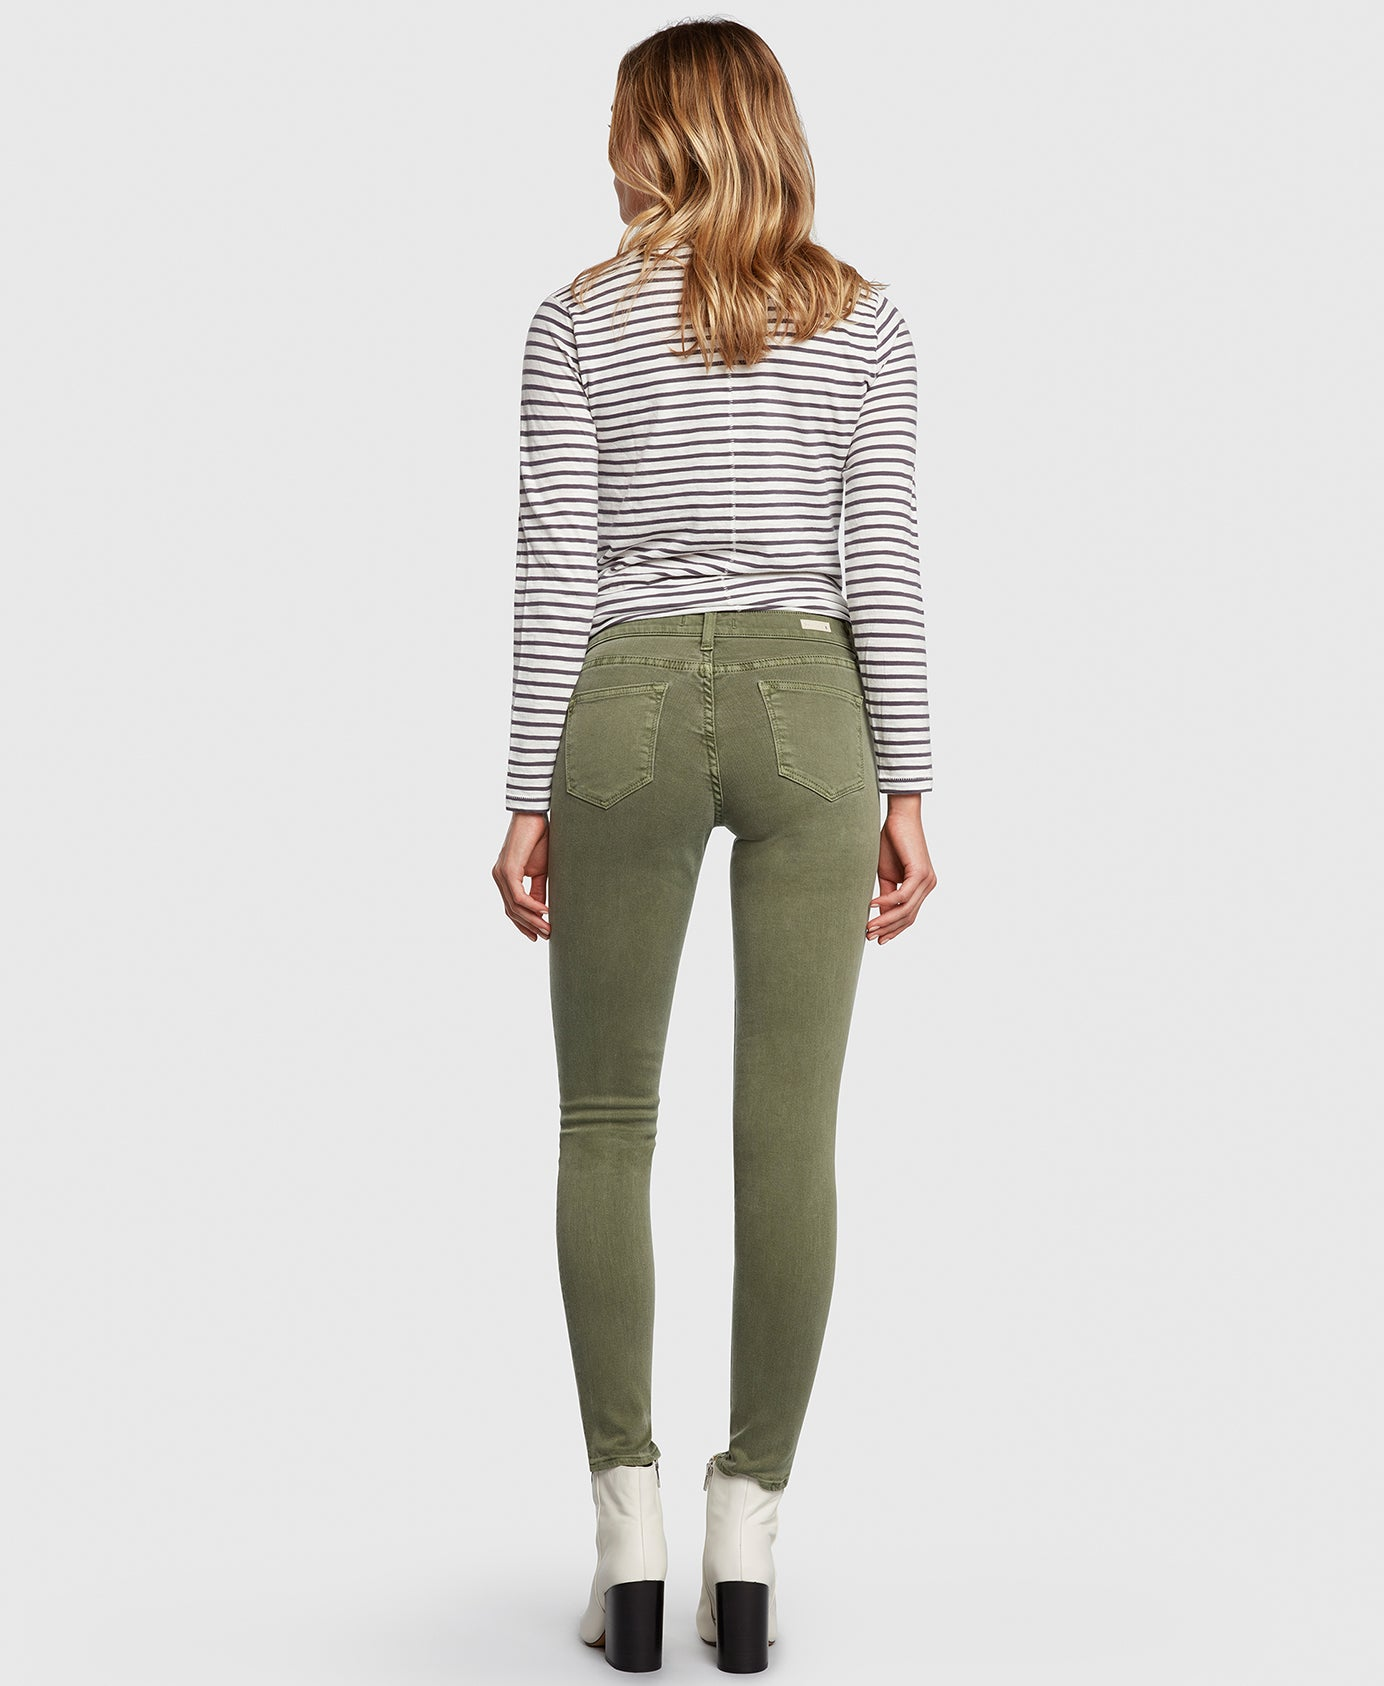 Principle Women's Jeans DREAMER in Eden green back